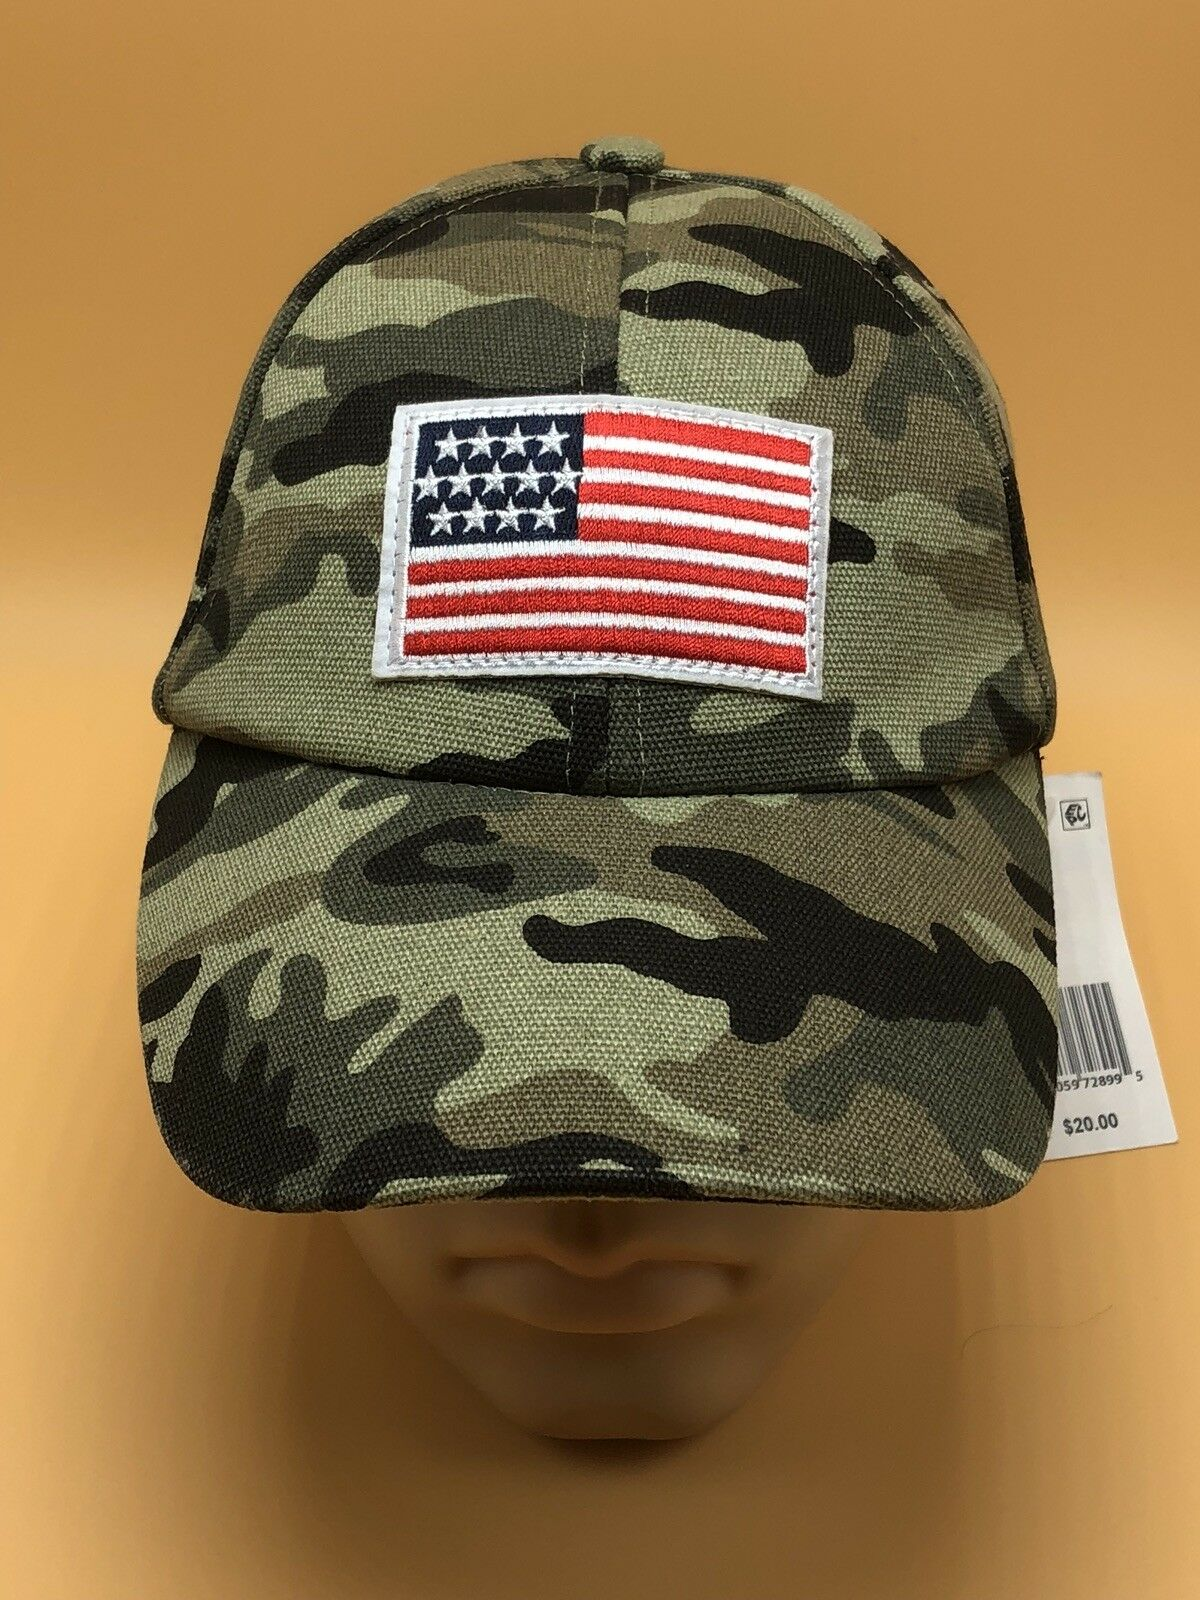 Flag Patch Baseball Camouflage Cap Camouflage Baseball Stylish Look At The Picture Fast Shipping ONY 3f304a